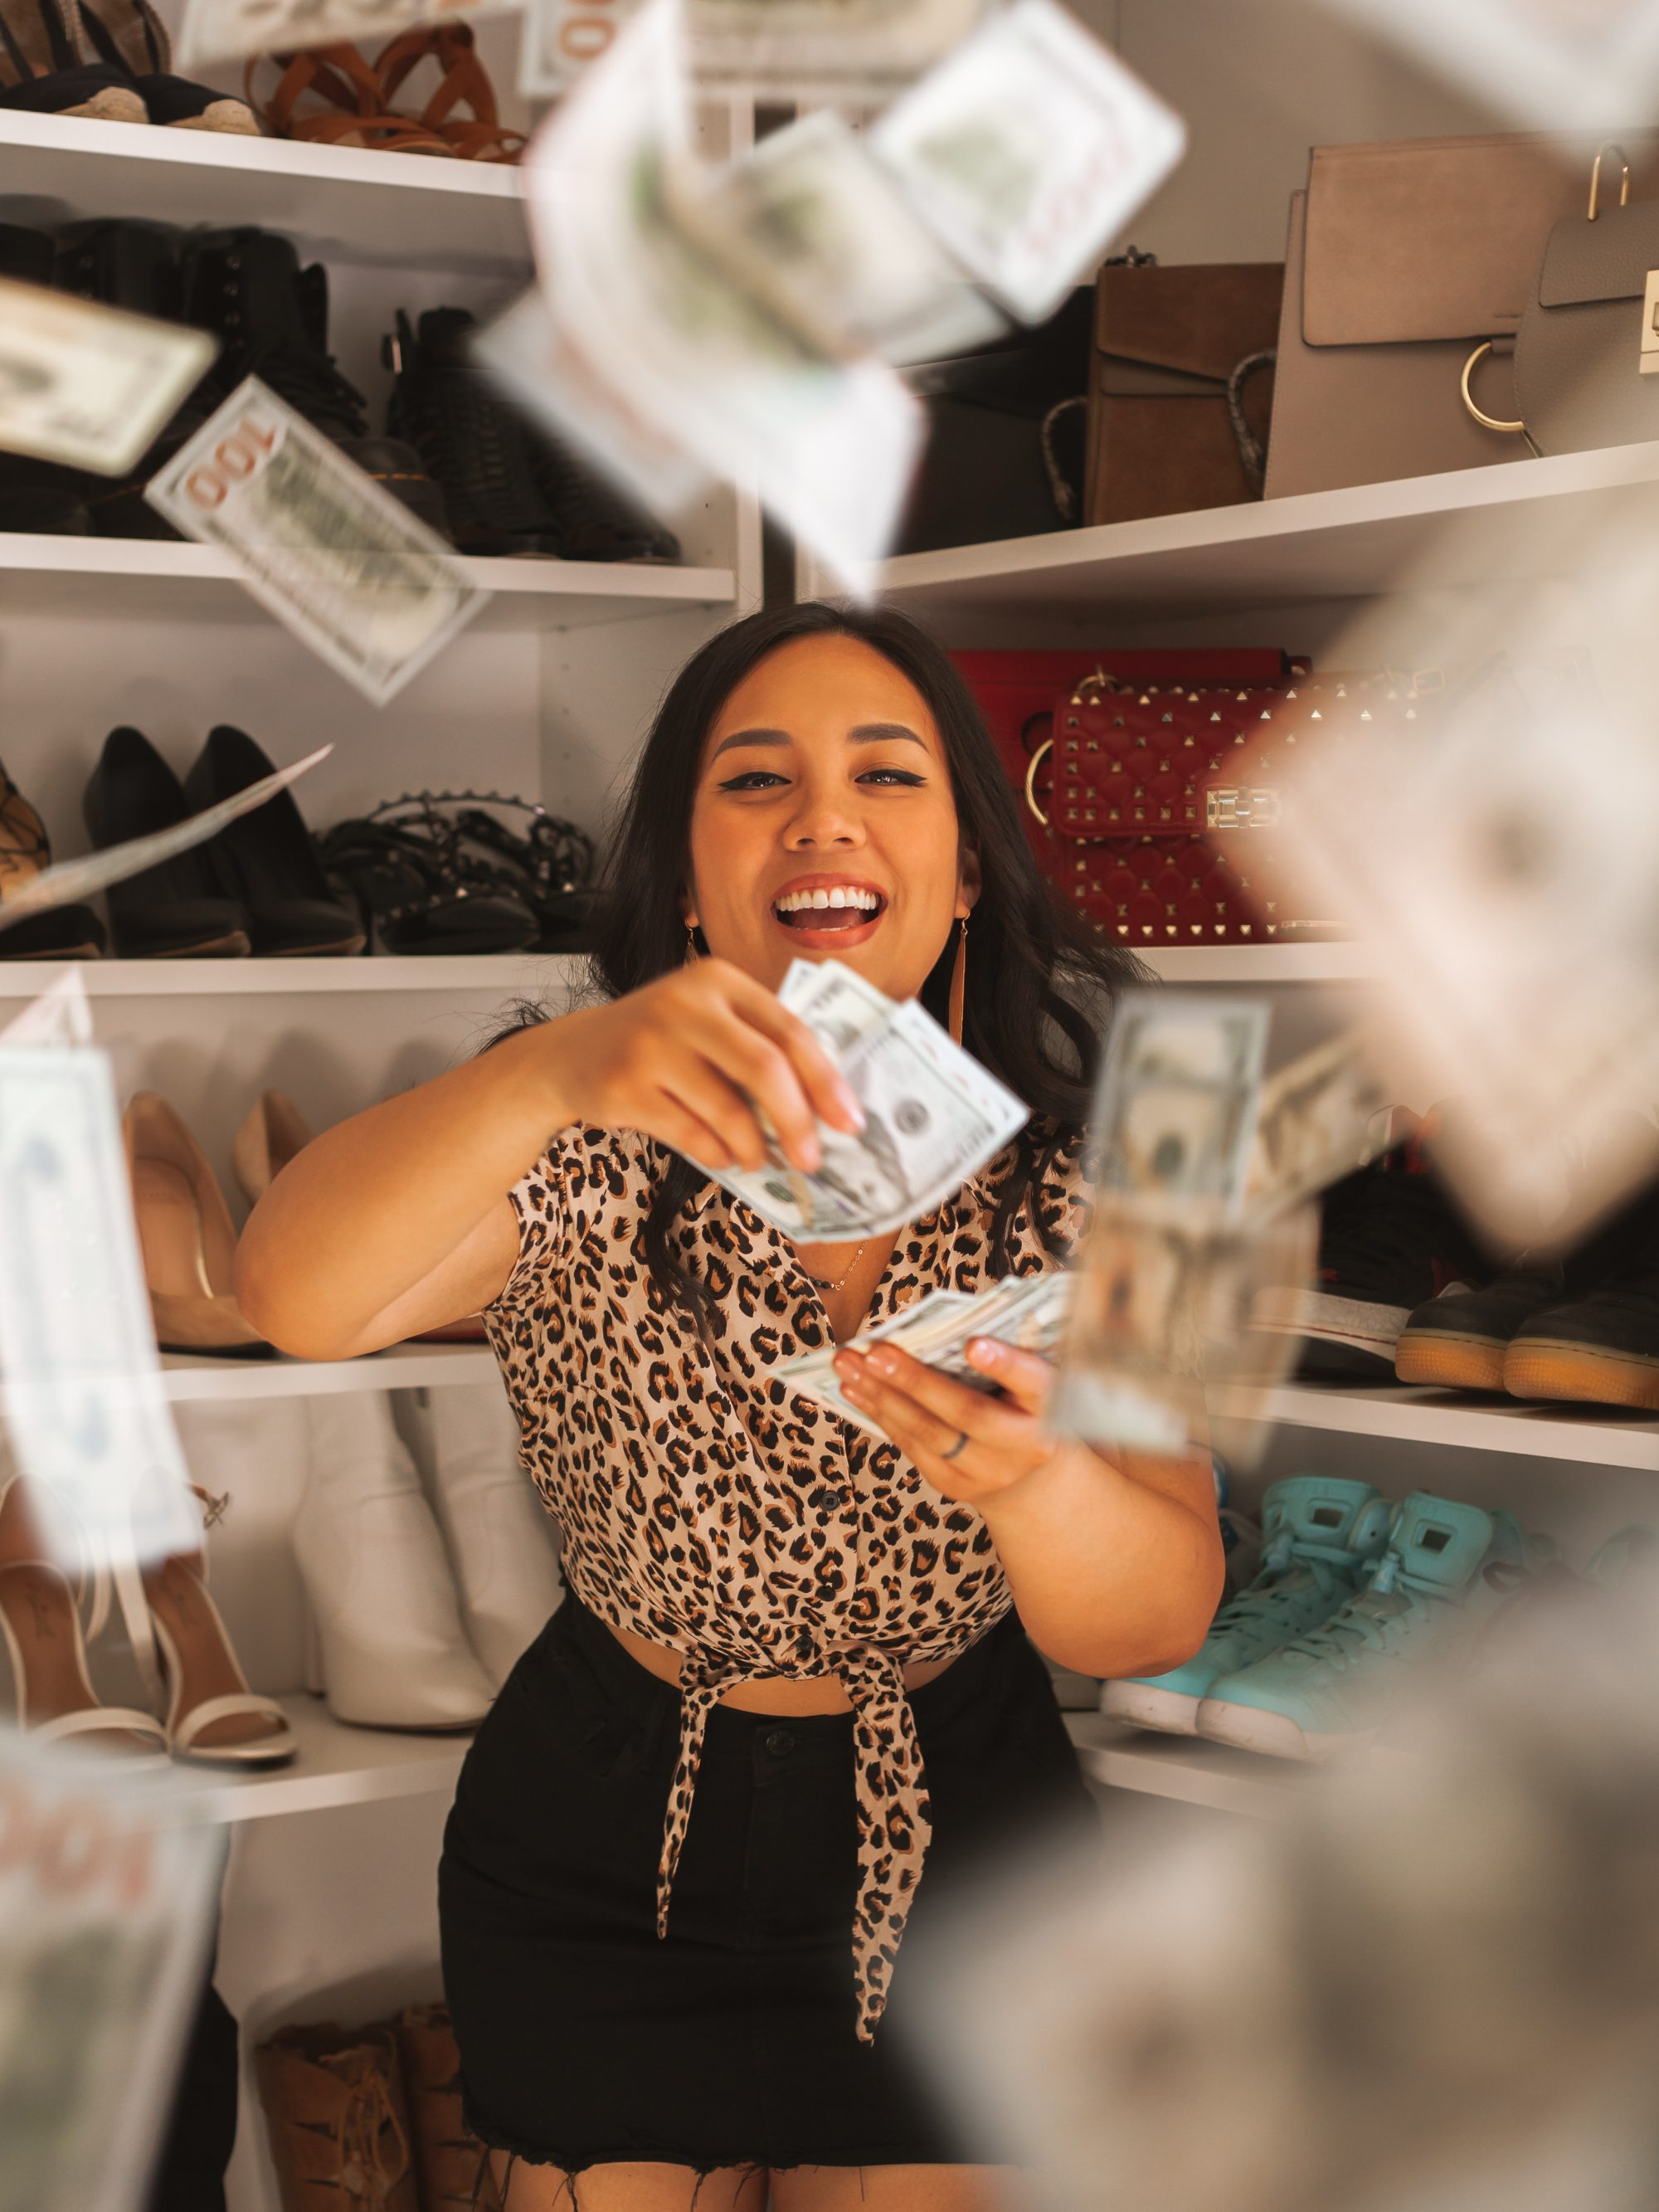 Rich woman throwing dollar bills in the air